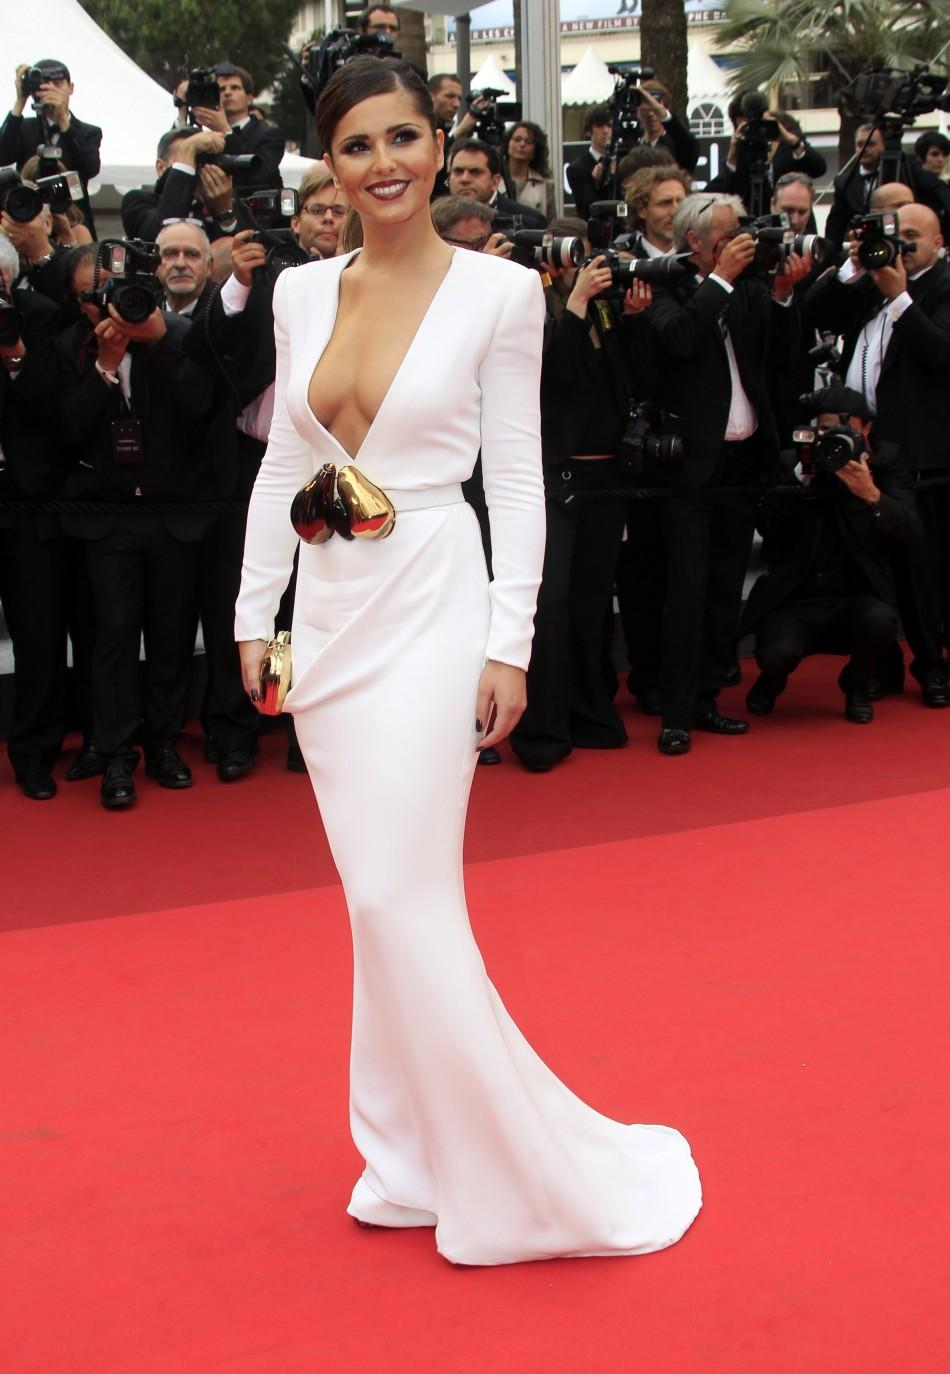 Pop singer Cheryl Cole arrives on the red carpet for the screening of the film Habemus Papam in competition at the 64th Cannes Film Festival,